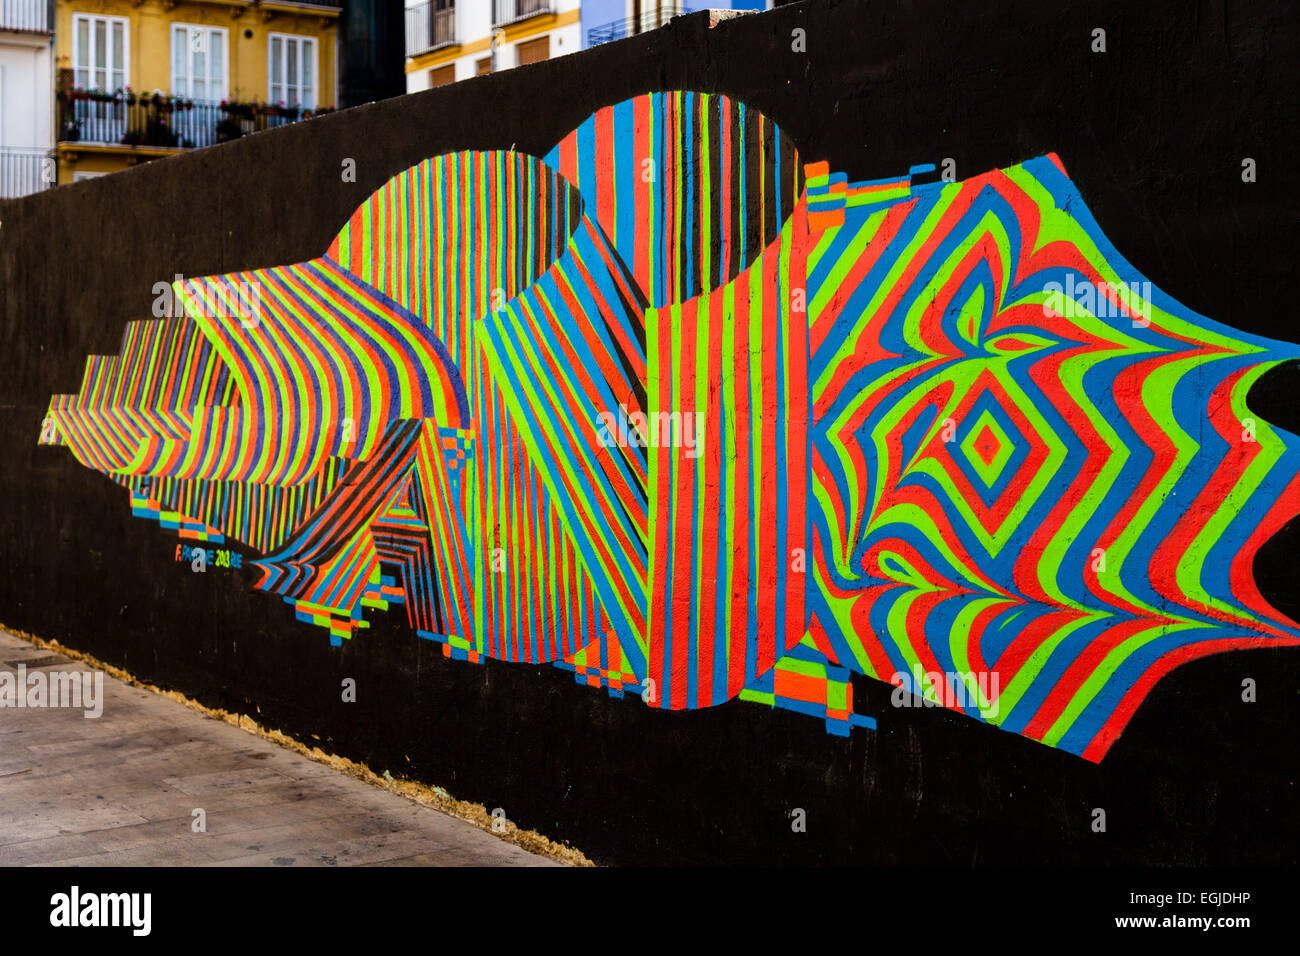 Graffiti Art Stock Photos Graffiti Art Stock Images Alamy